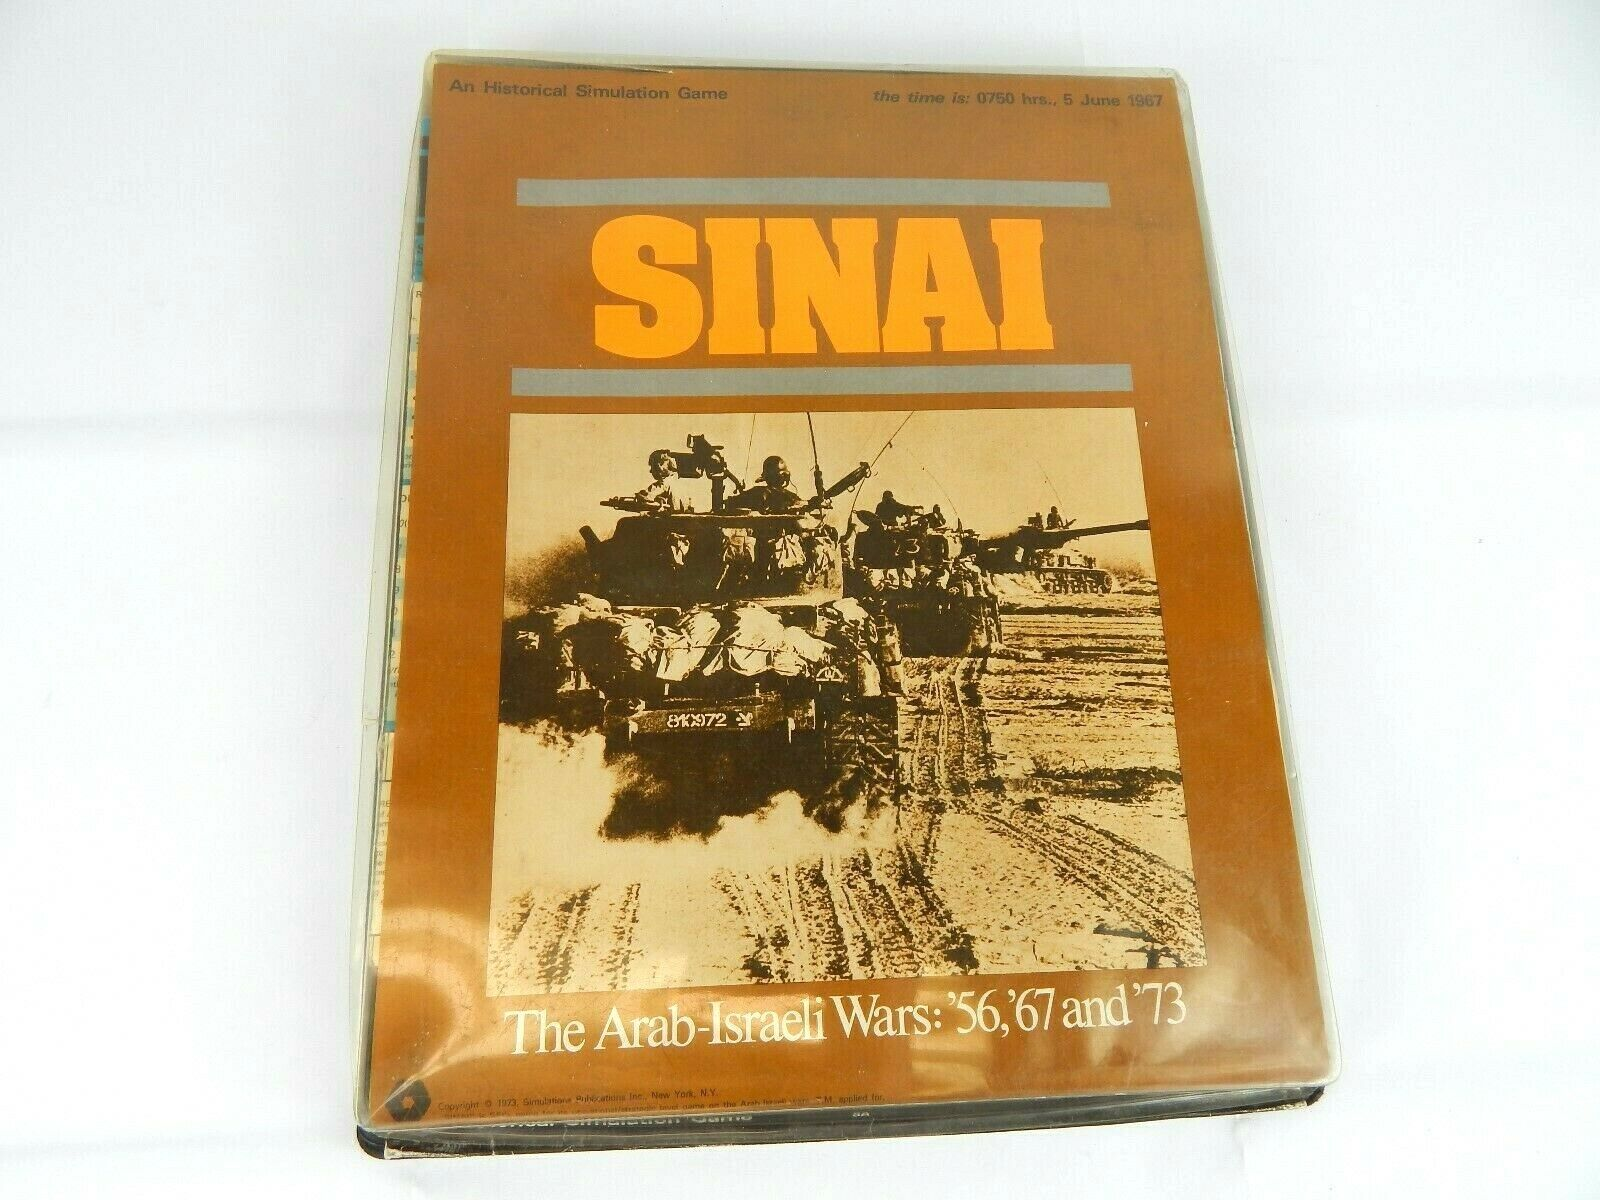 Vintage Sinai The Arab-Israeli Wars Board Game SPI 1973